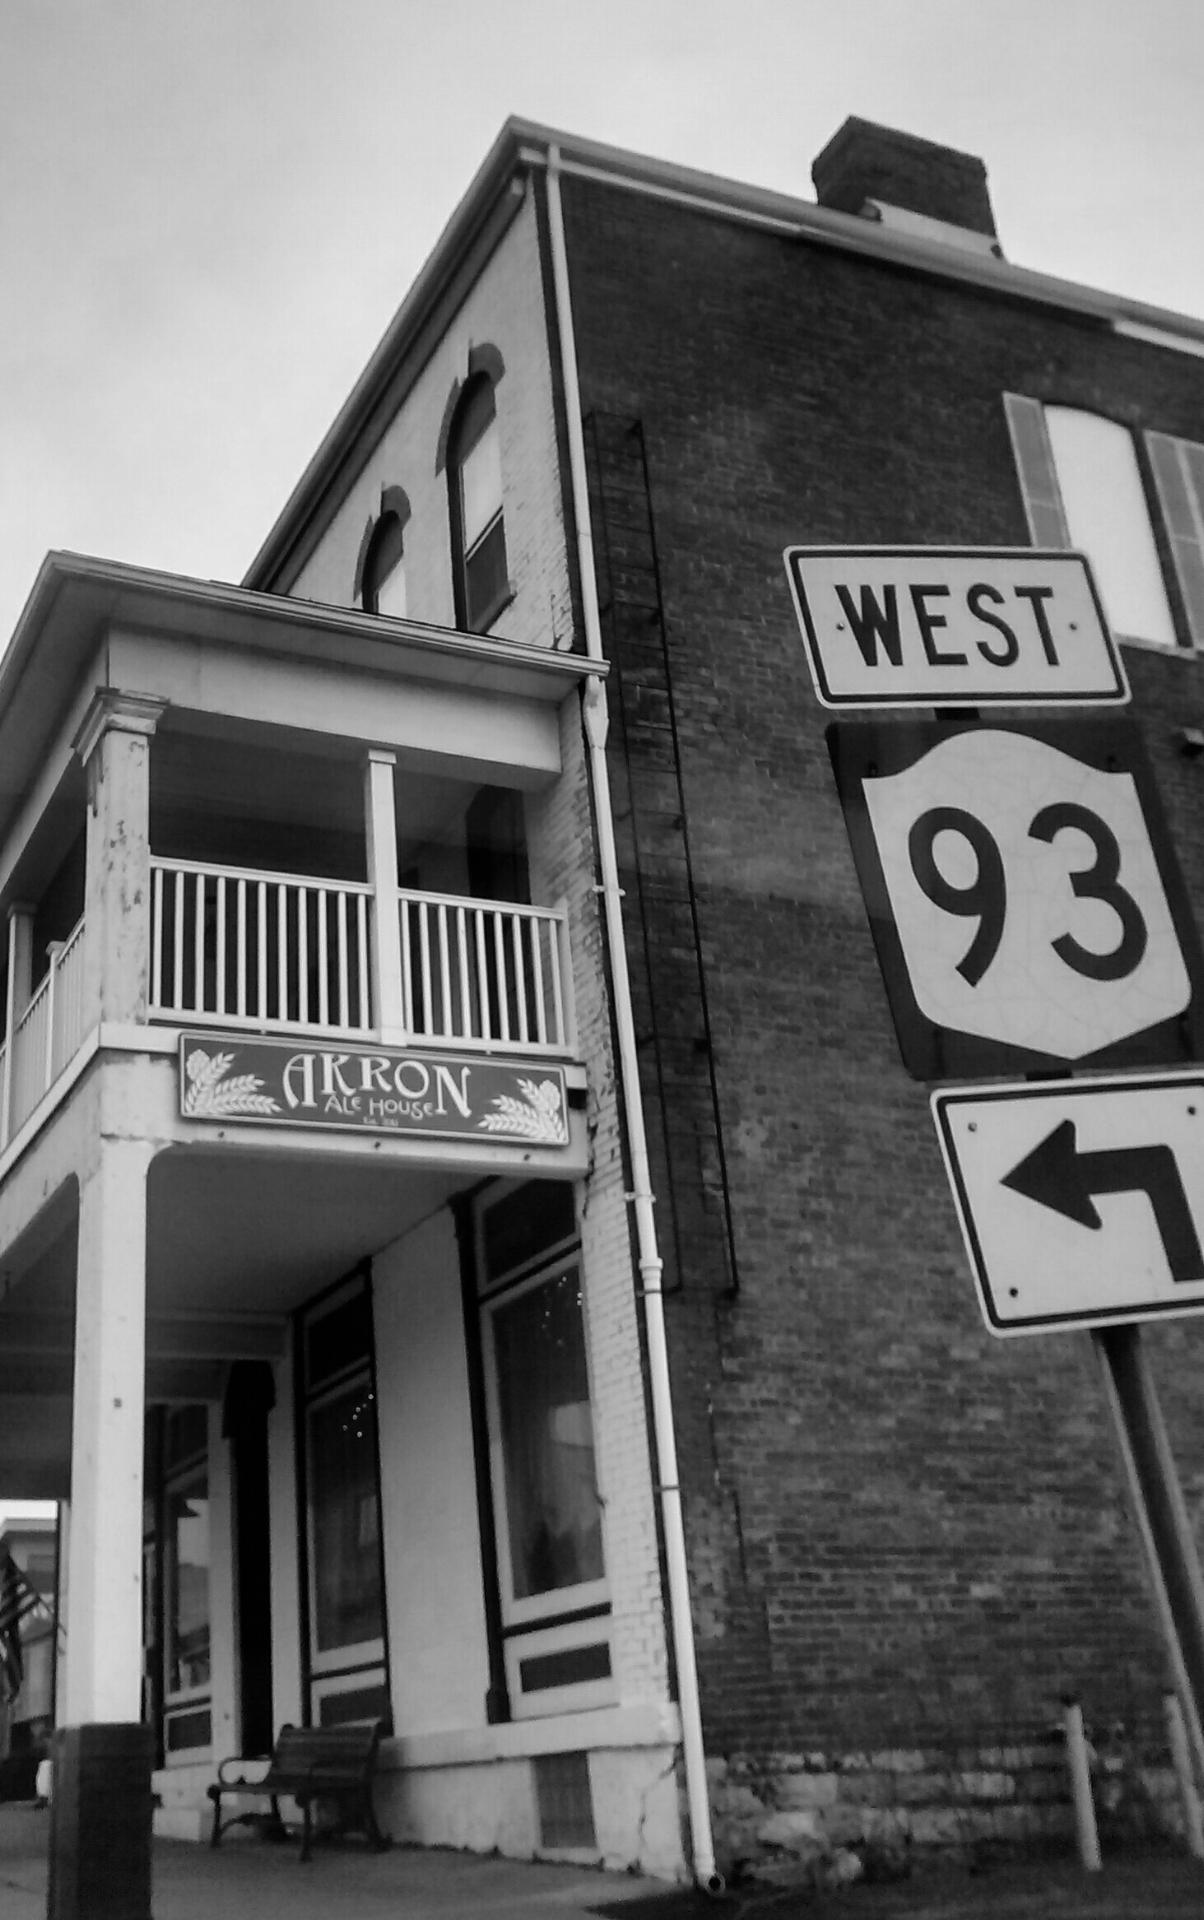 black and white photo of a brick building with AKRON sign and road sign for Hwy 93 West with a left arrow